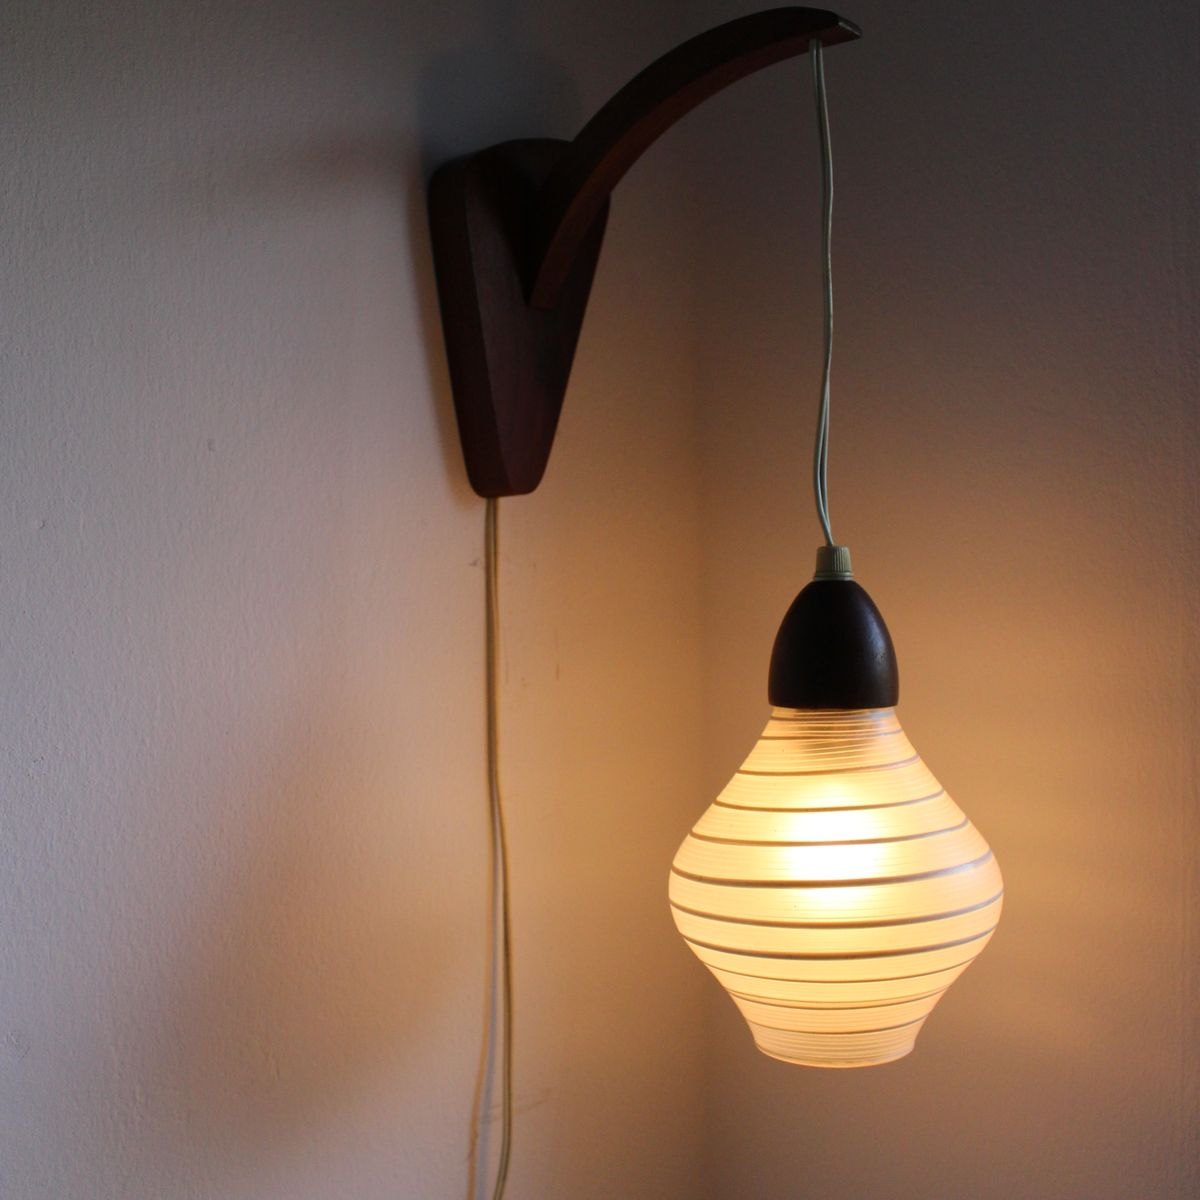 Vintage Teak Wooden Wall Lamp with Glass Shade from Philips, 1950s for sale at Pamono